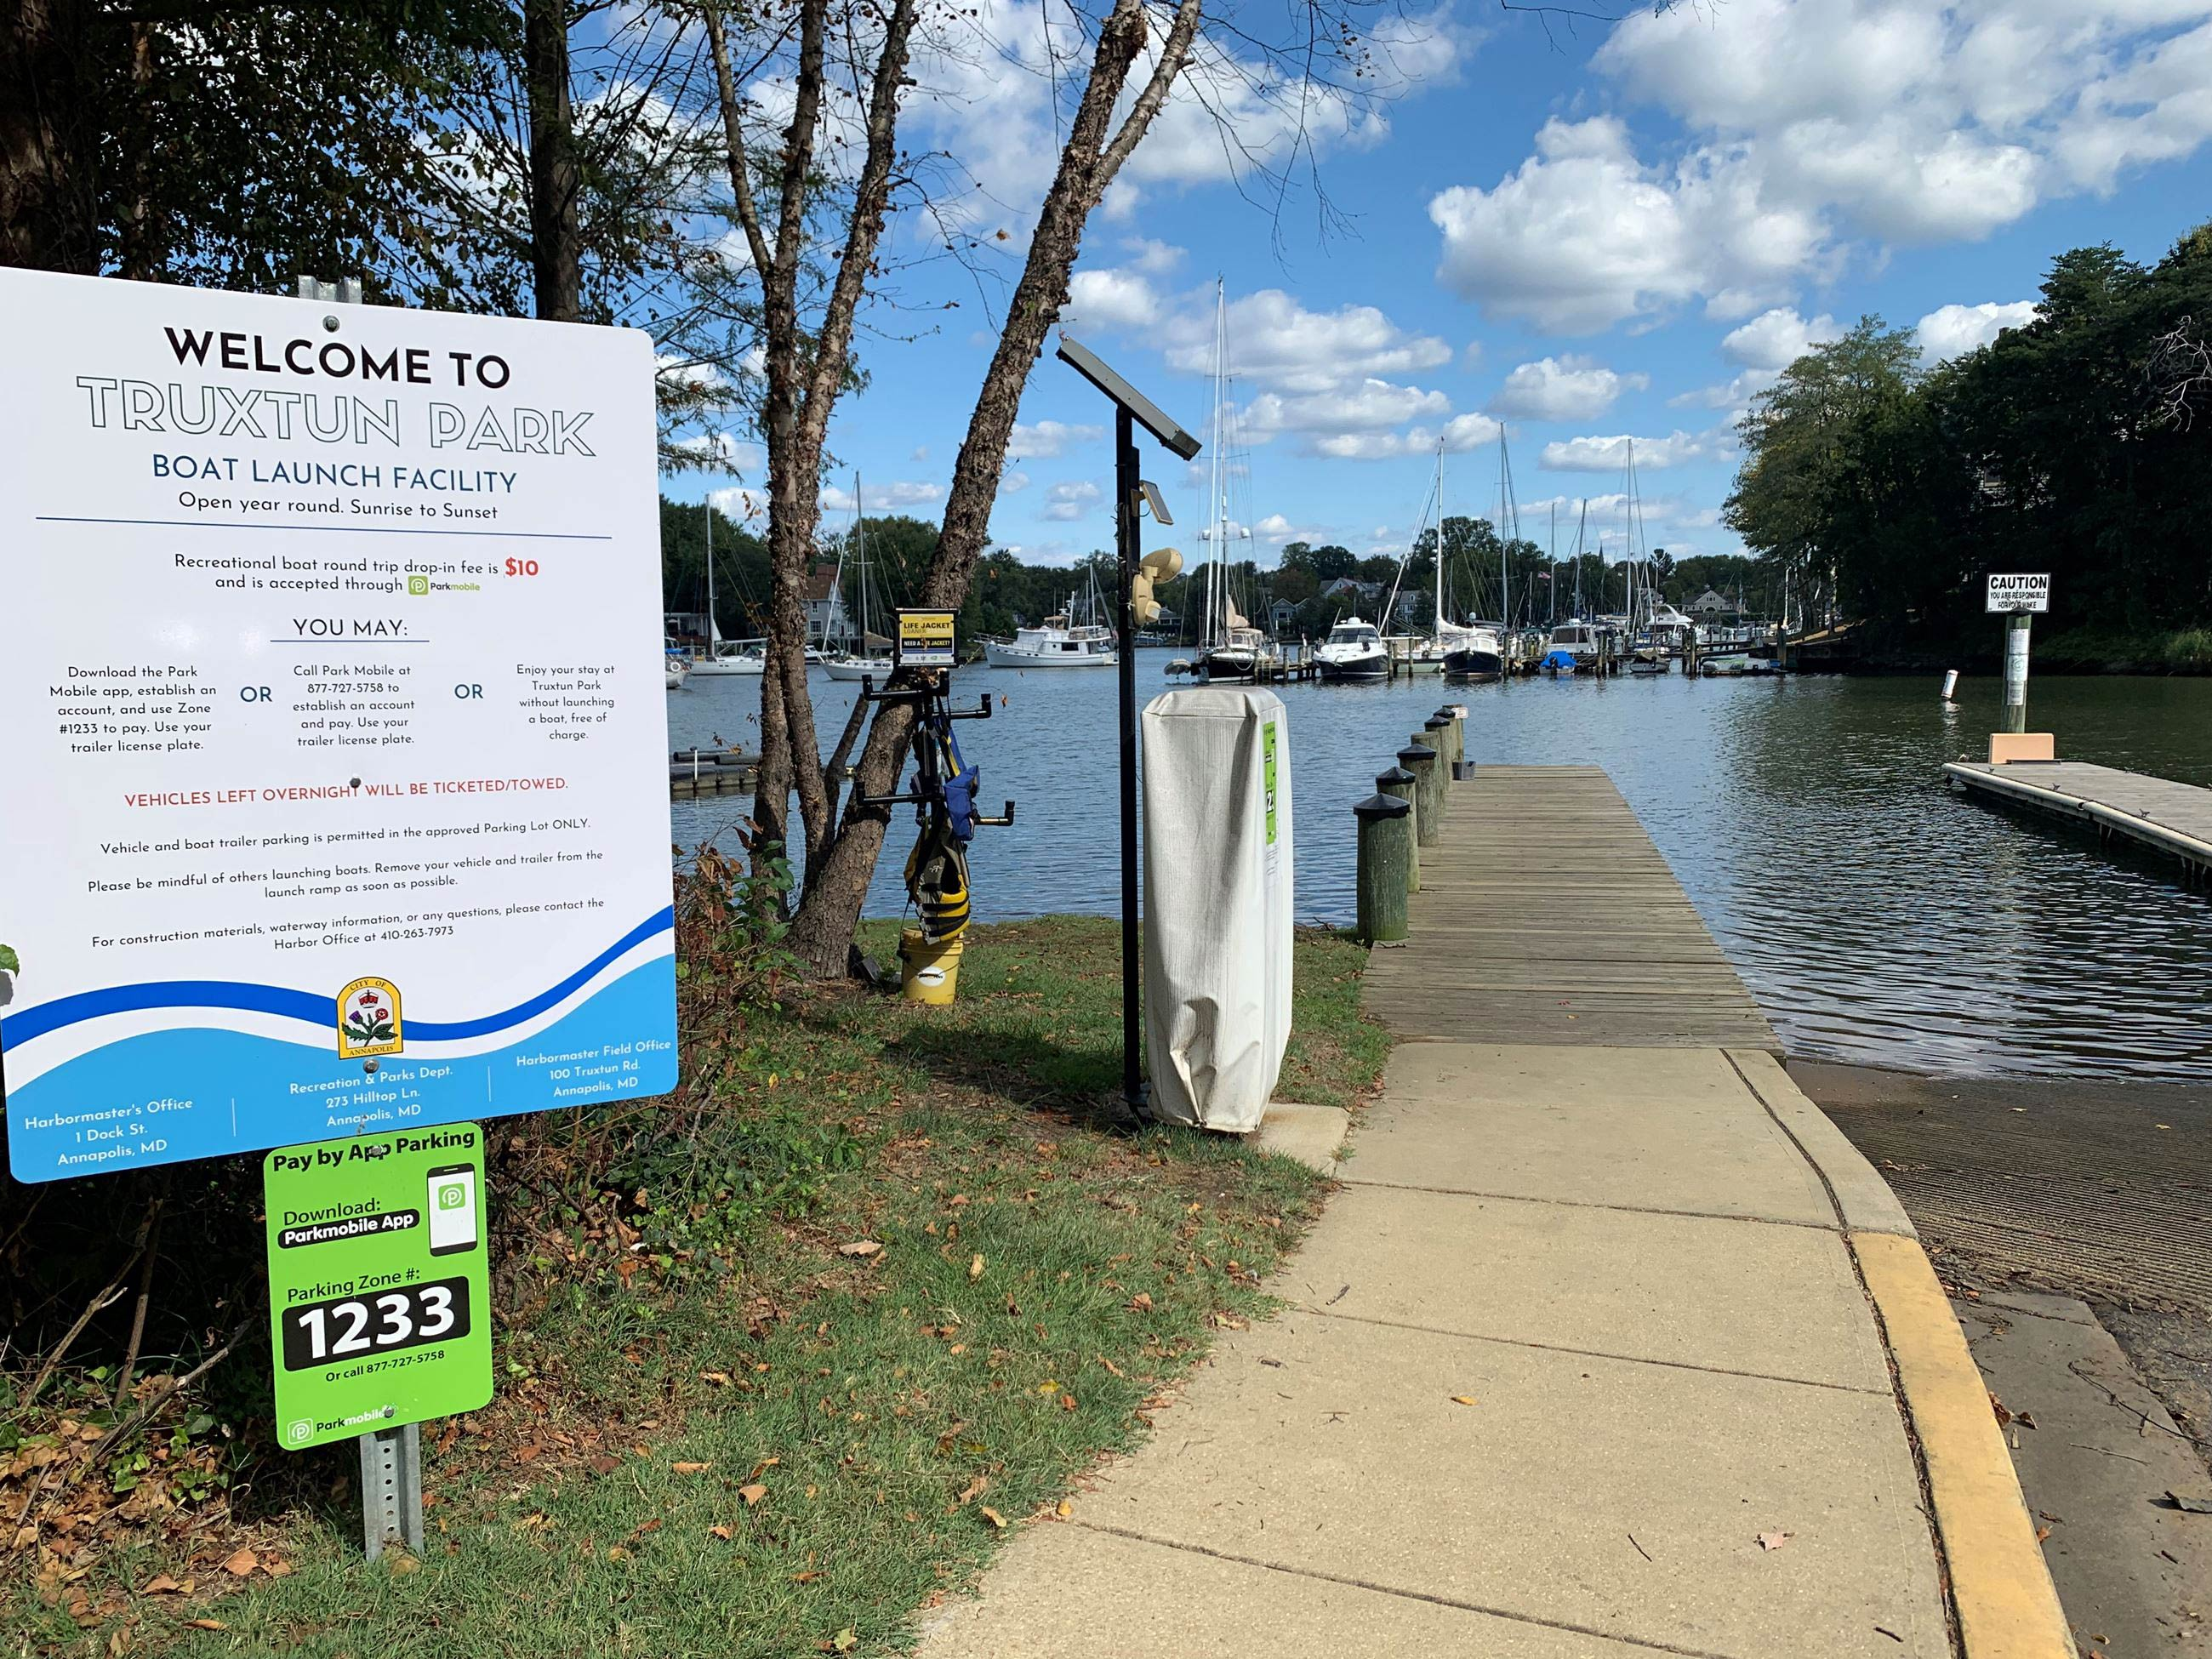 Truxtun Park Boat Ramp September 2019 access to boat launch Spa Creek